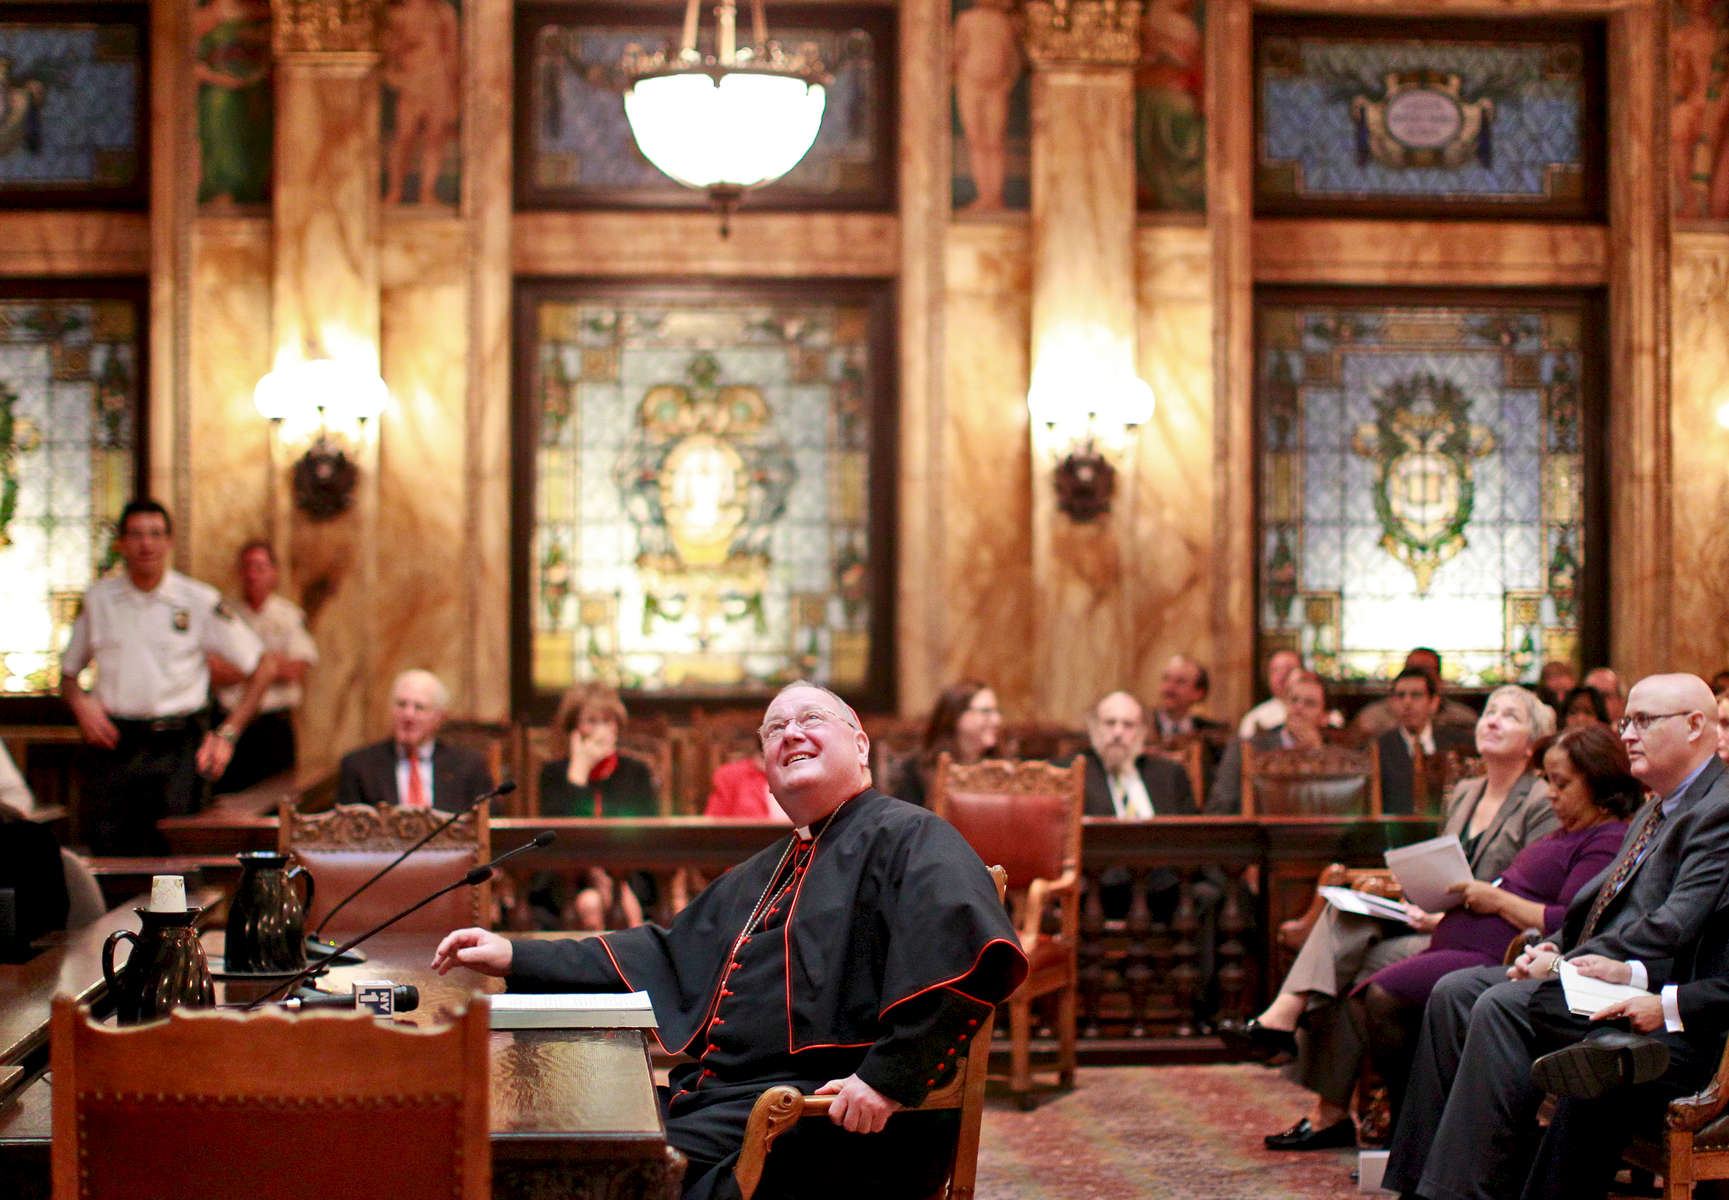 Cardinal Timothy M. Dolan, archbishop of New York, testifies about legal services for low-income residents during a public hearing held inside Supreme Court's Appellate Division located at 27 Madison Avenue in Manhattan, New York on Monday, October 1, 2012.